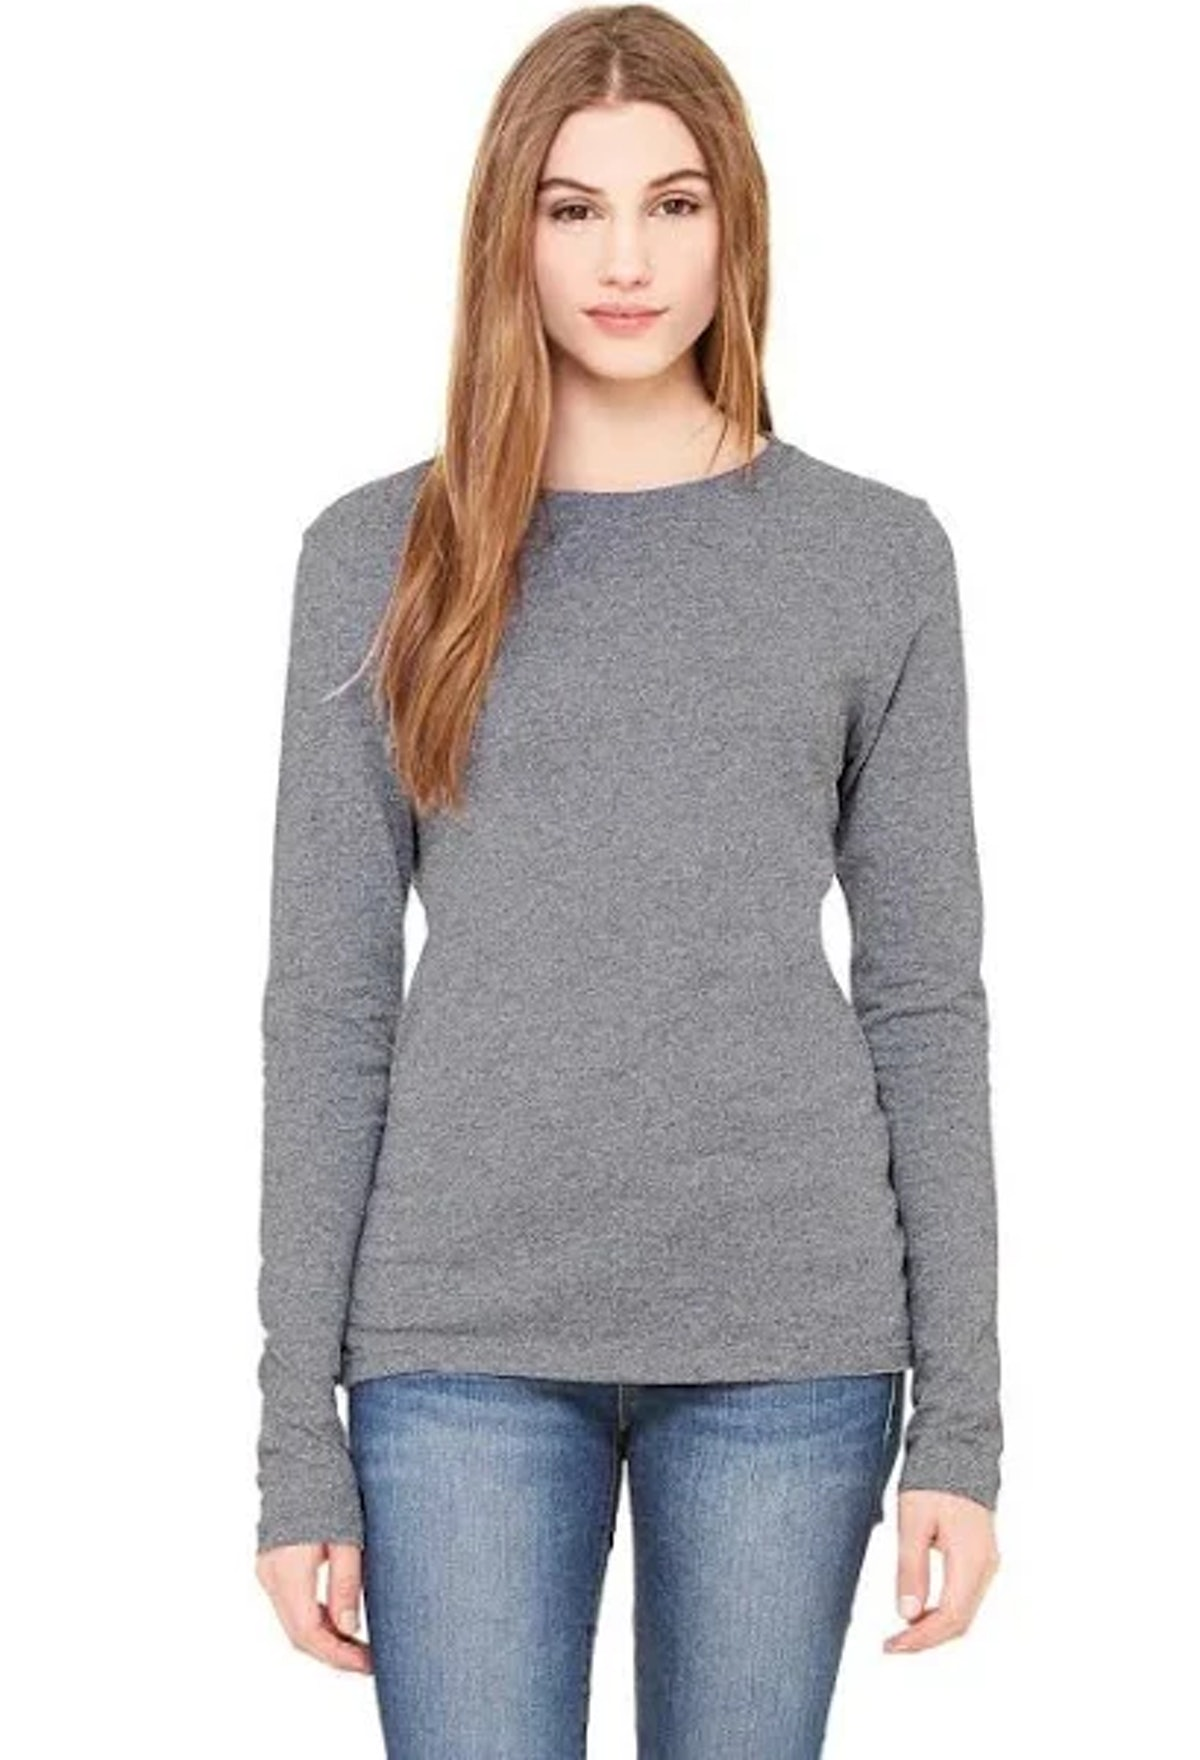 White Black 1Deep Heather Material & Color Legend Number indicates a different fabric.  152% Cotton...